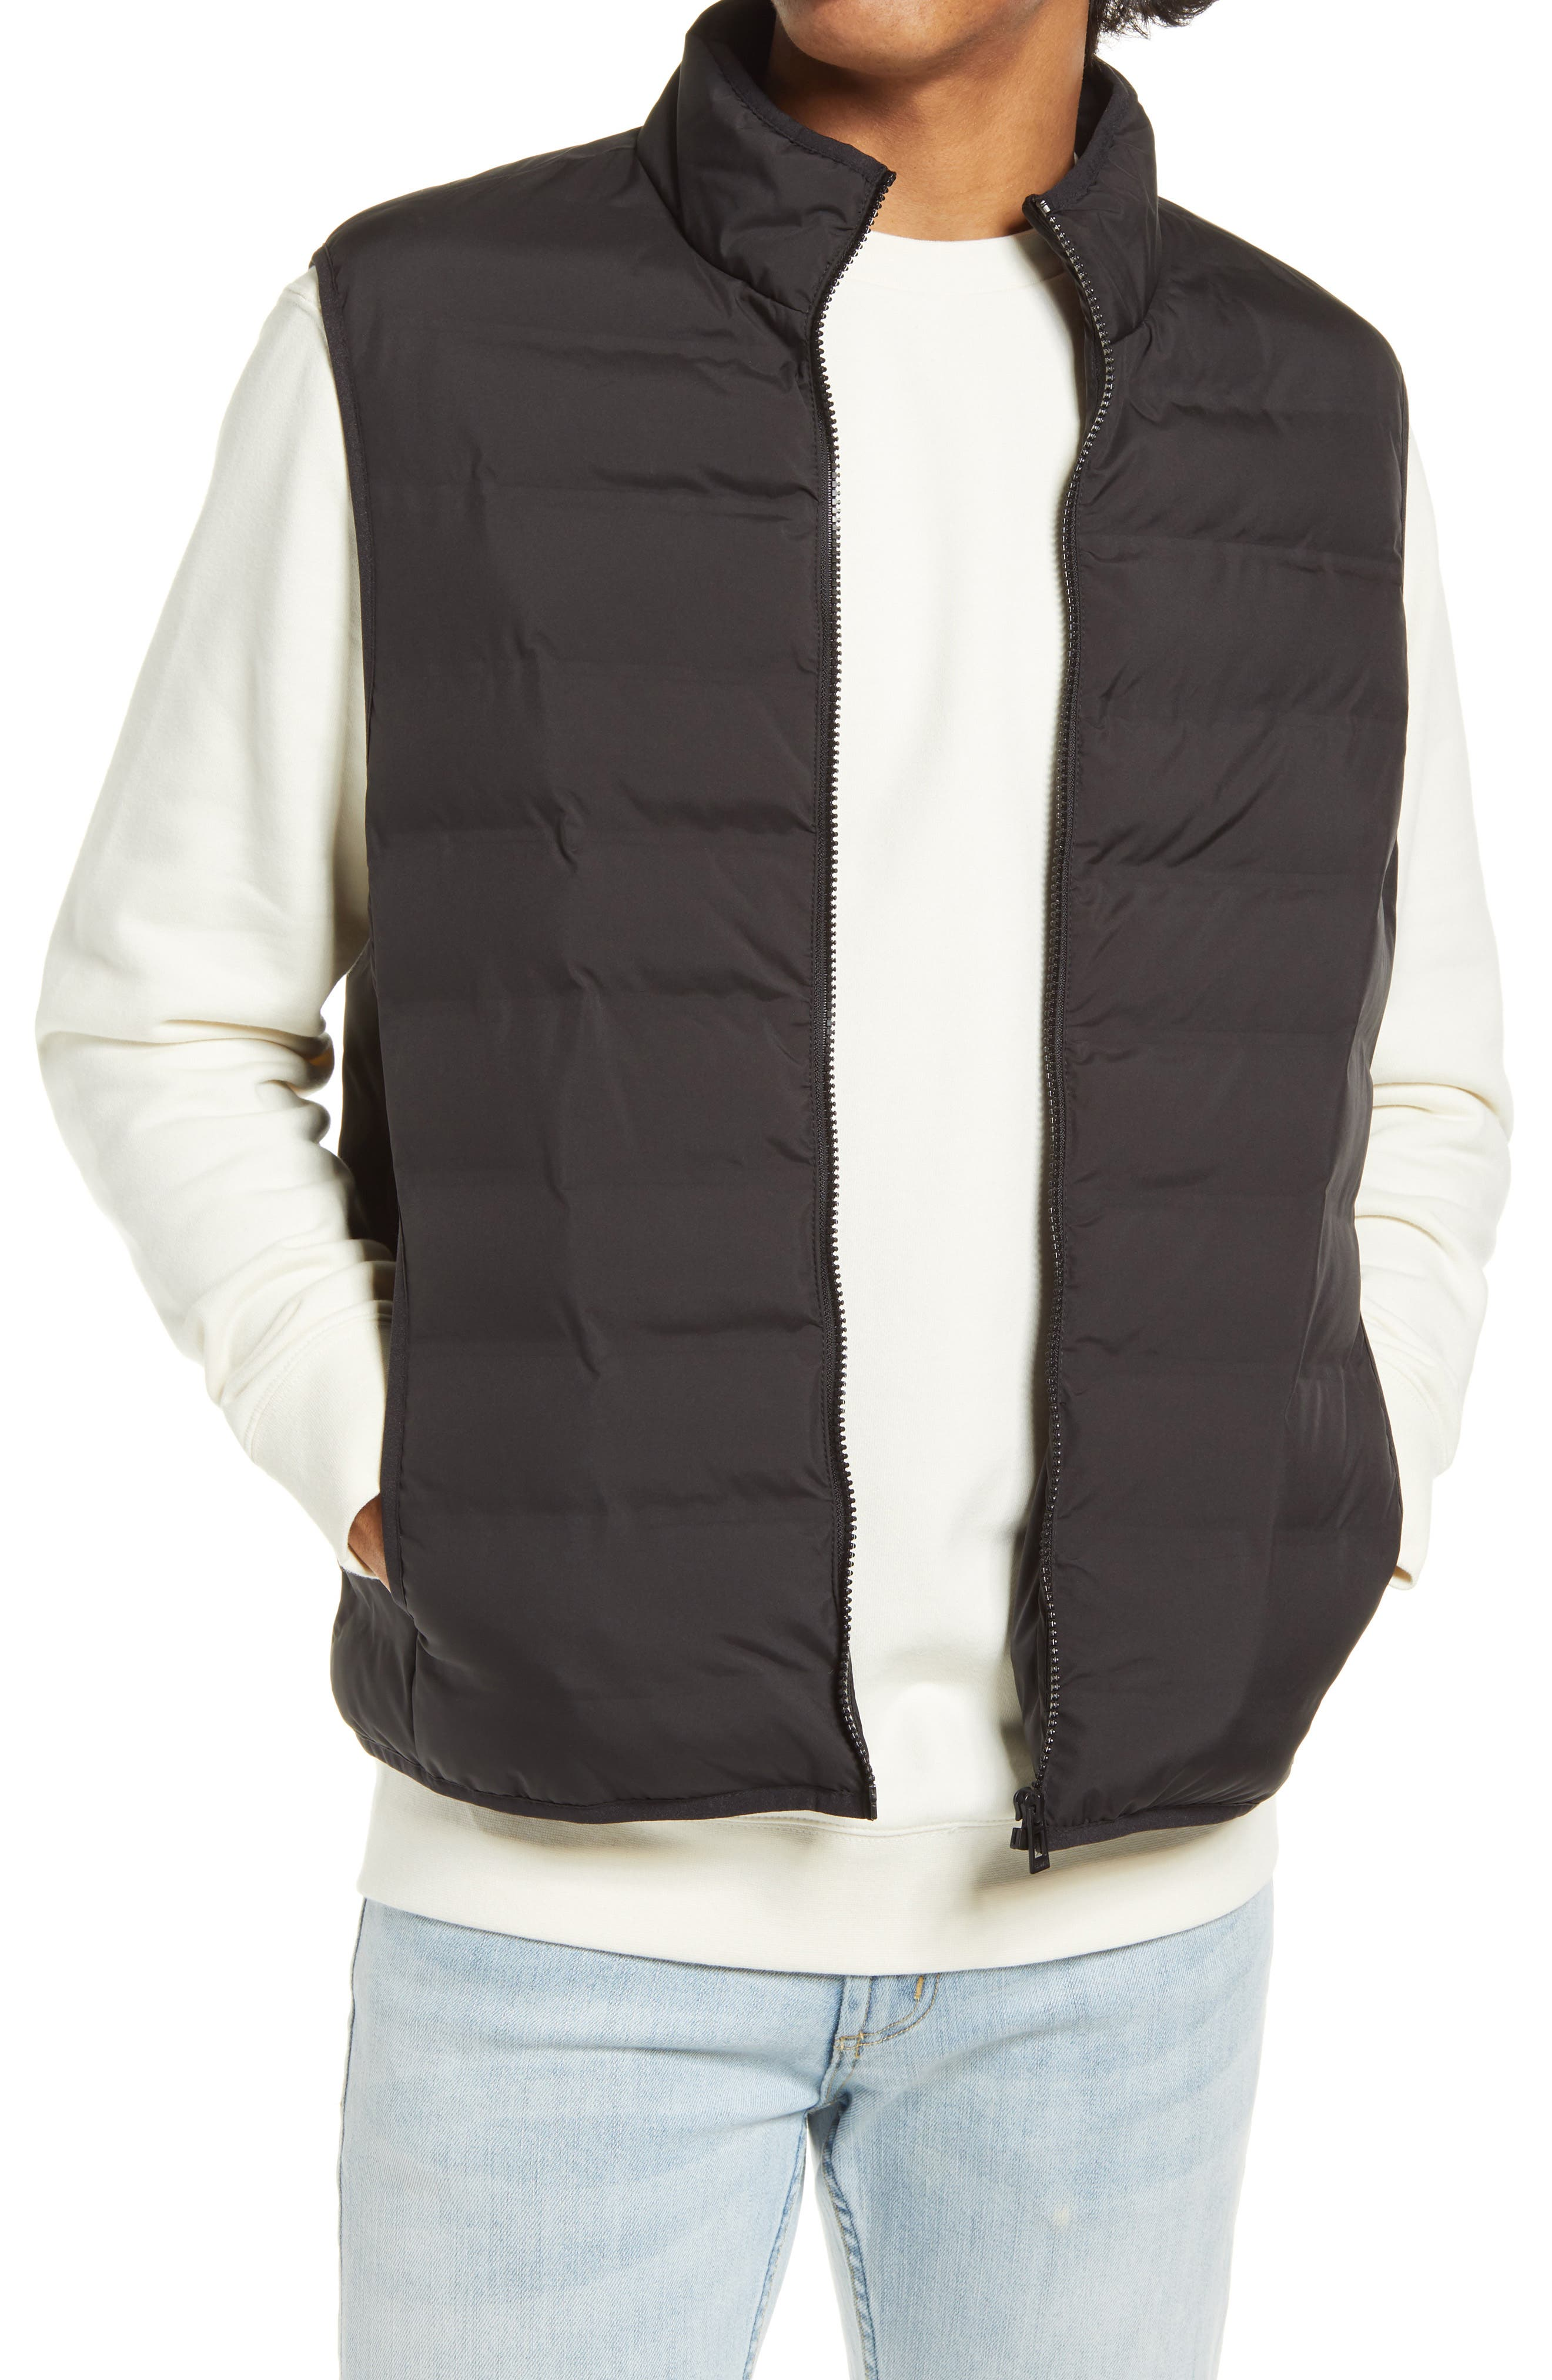 Quilted construction makes this vest a warm and handsome addition to your layered look. Style Name: Topman Alien Liner Vest. Style Number: 6110565 1. Available in stores.